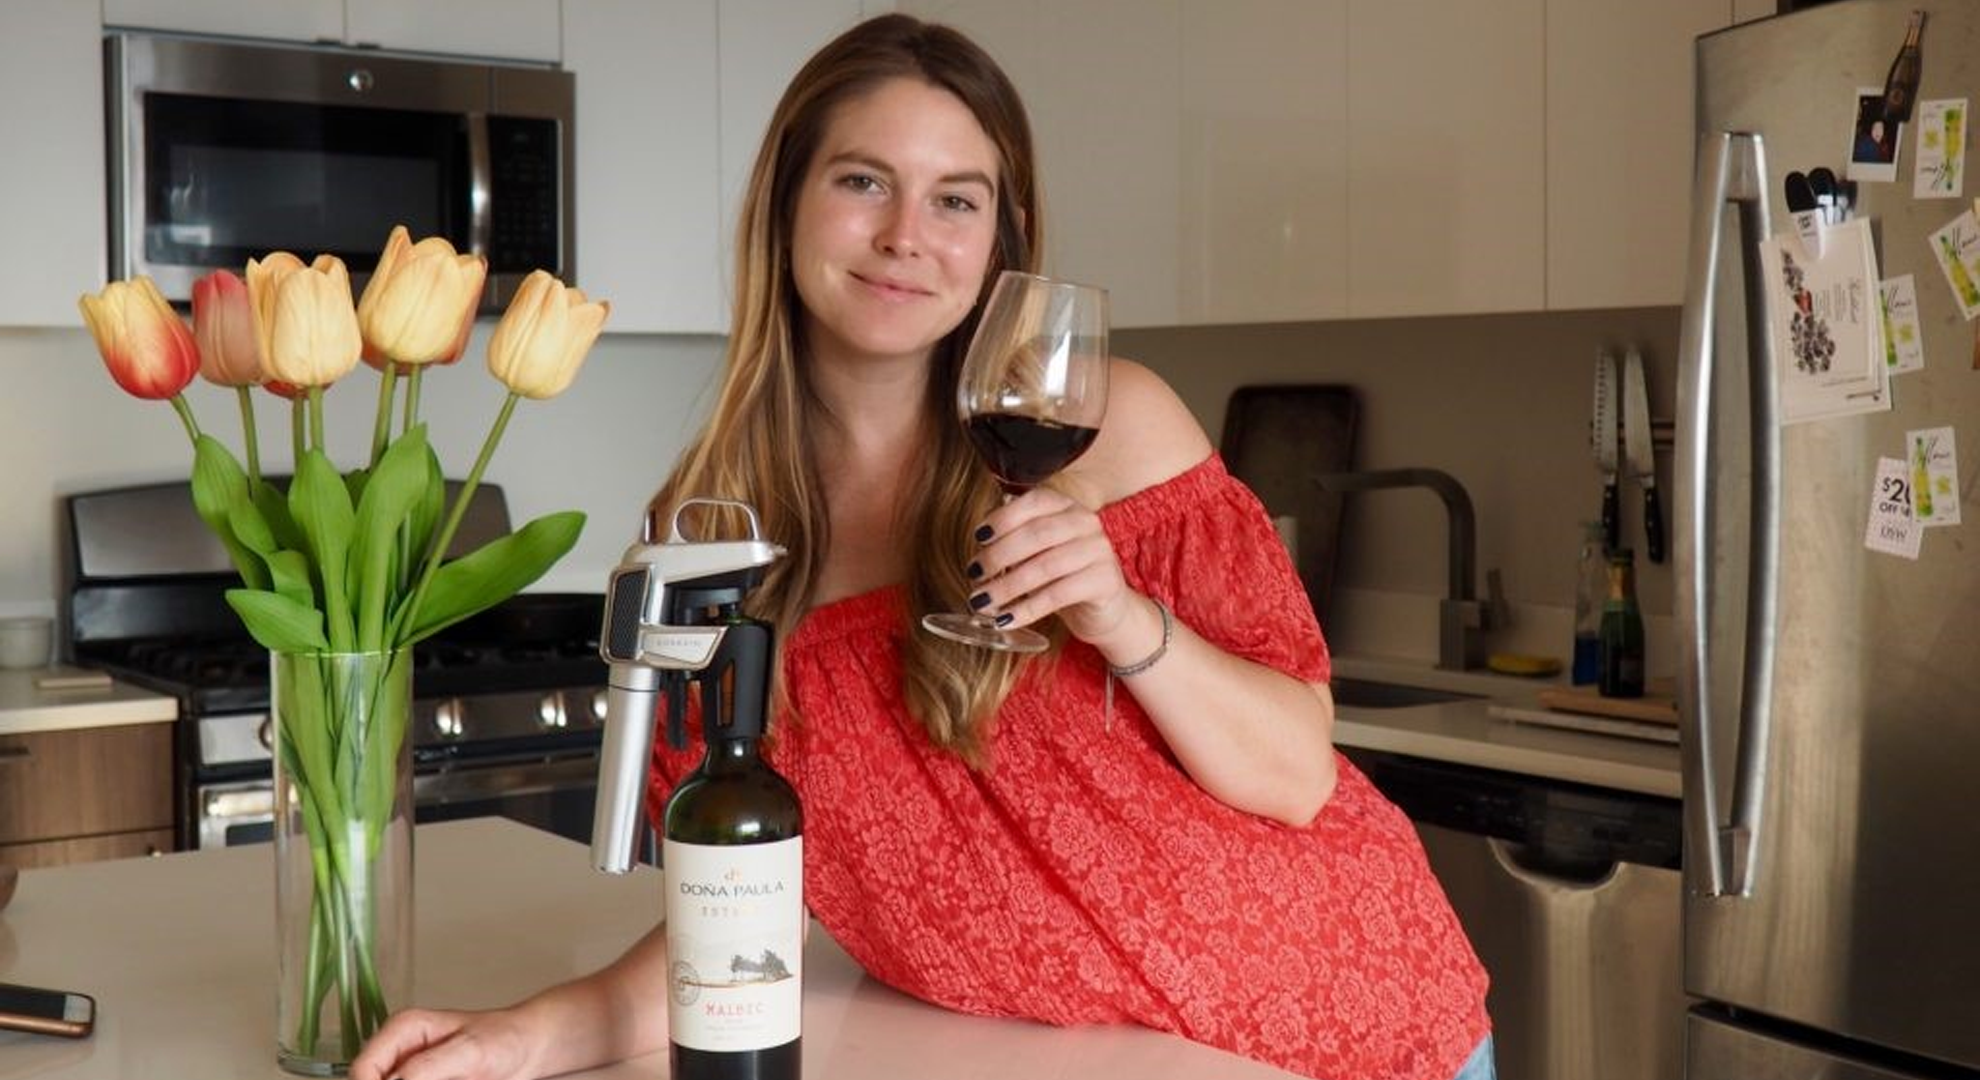 Chelsie Petras of Chel Loves Wine with a red wine glass and Coravin on a red wine bottle.